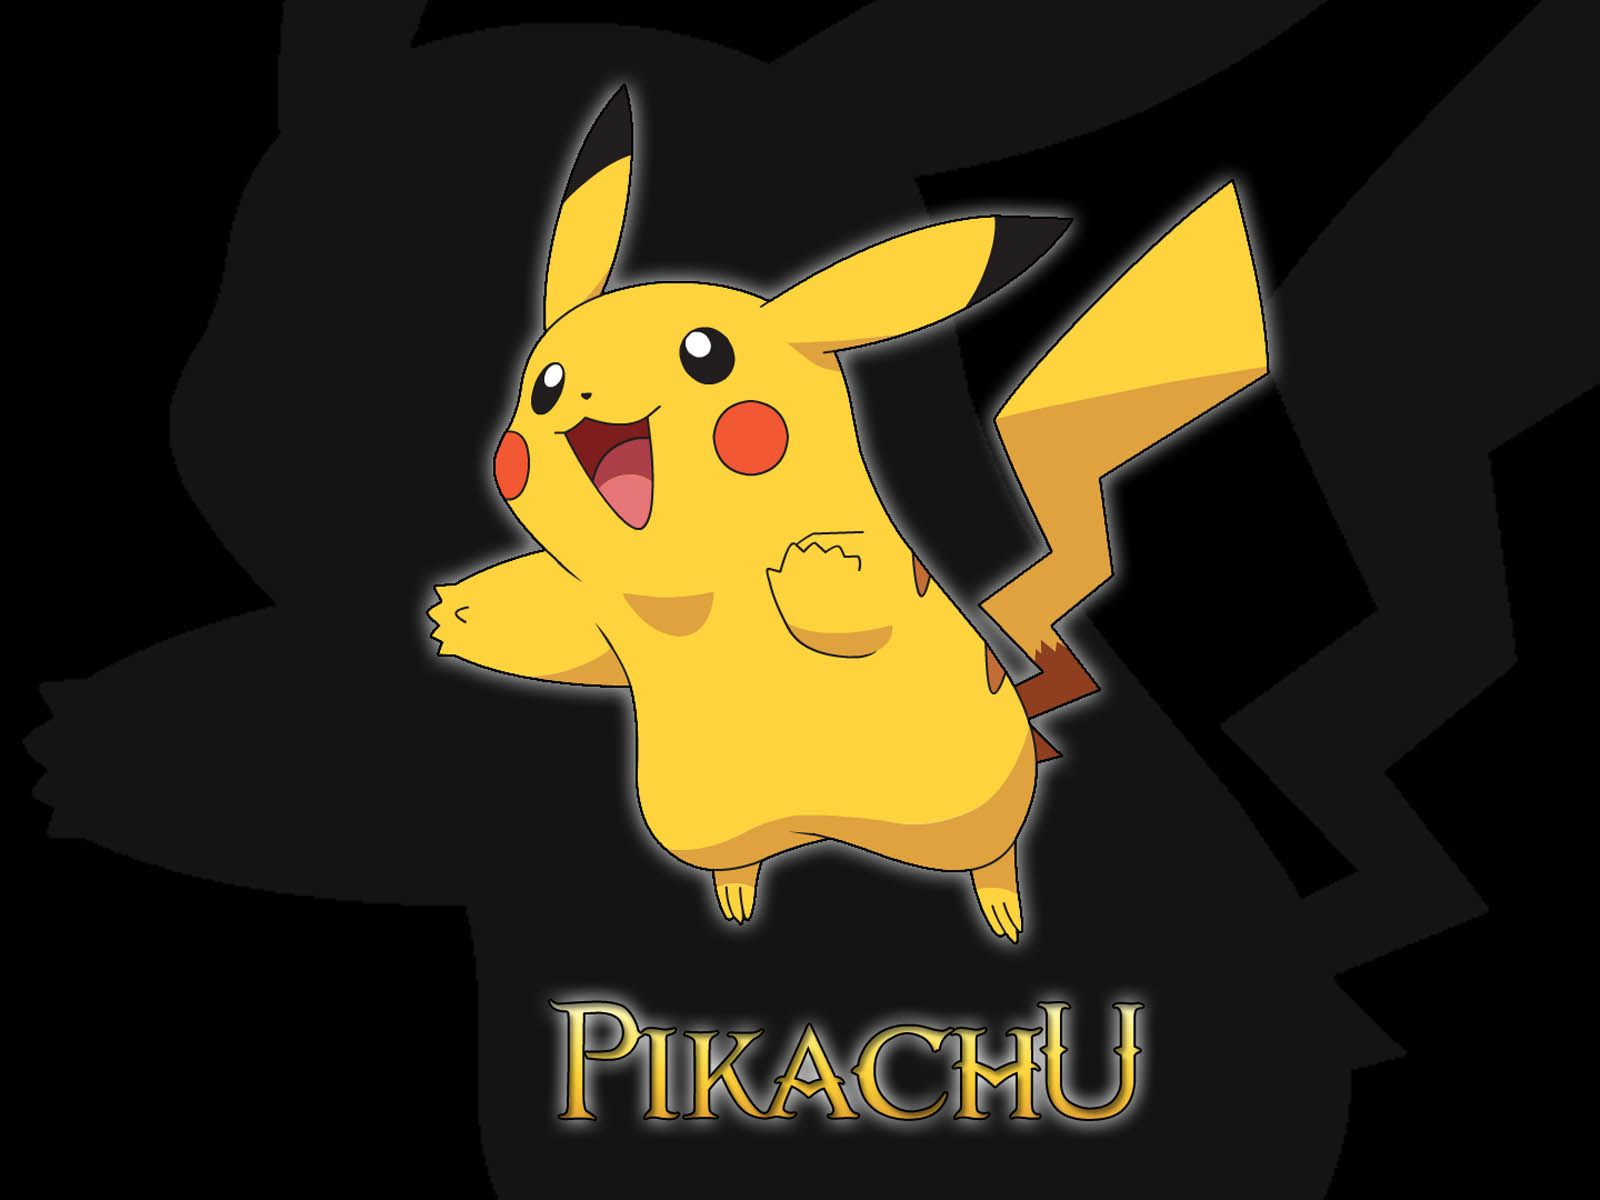 Epic Pikachu Live Wallpapers - Top Free